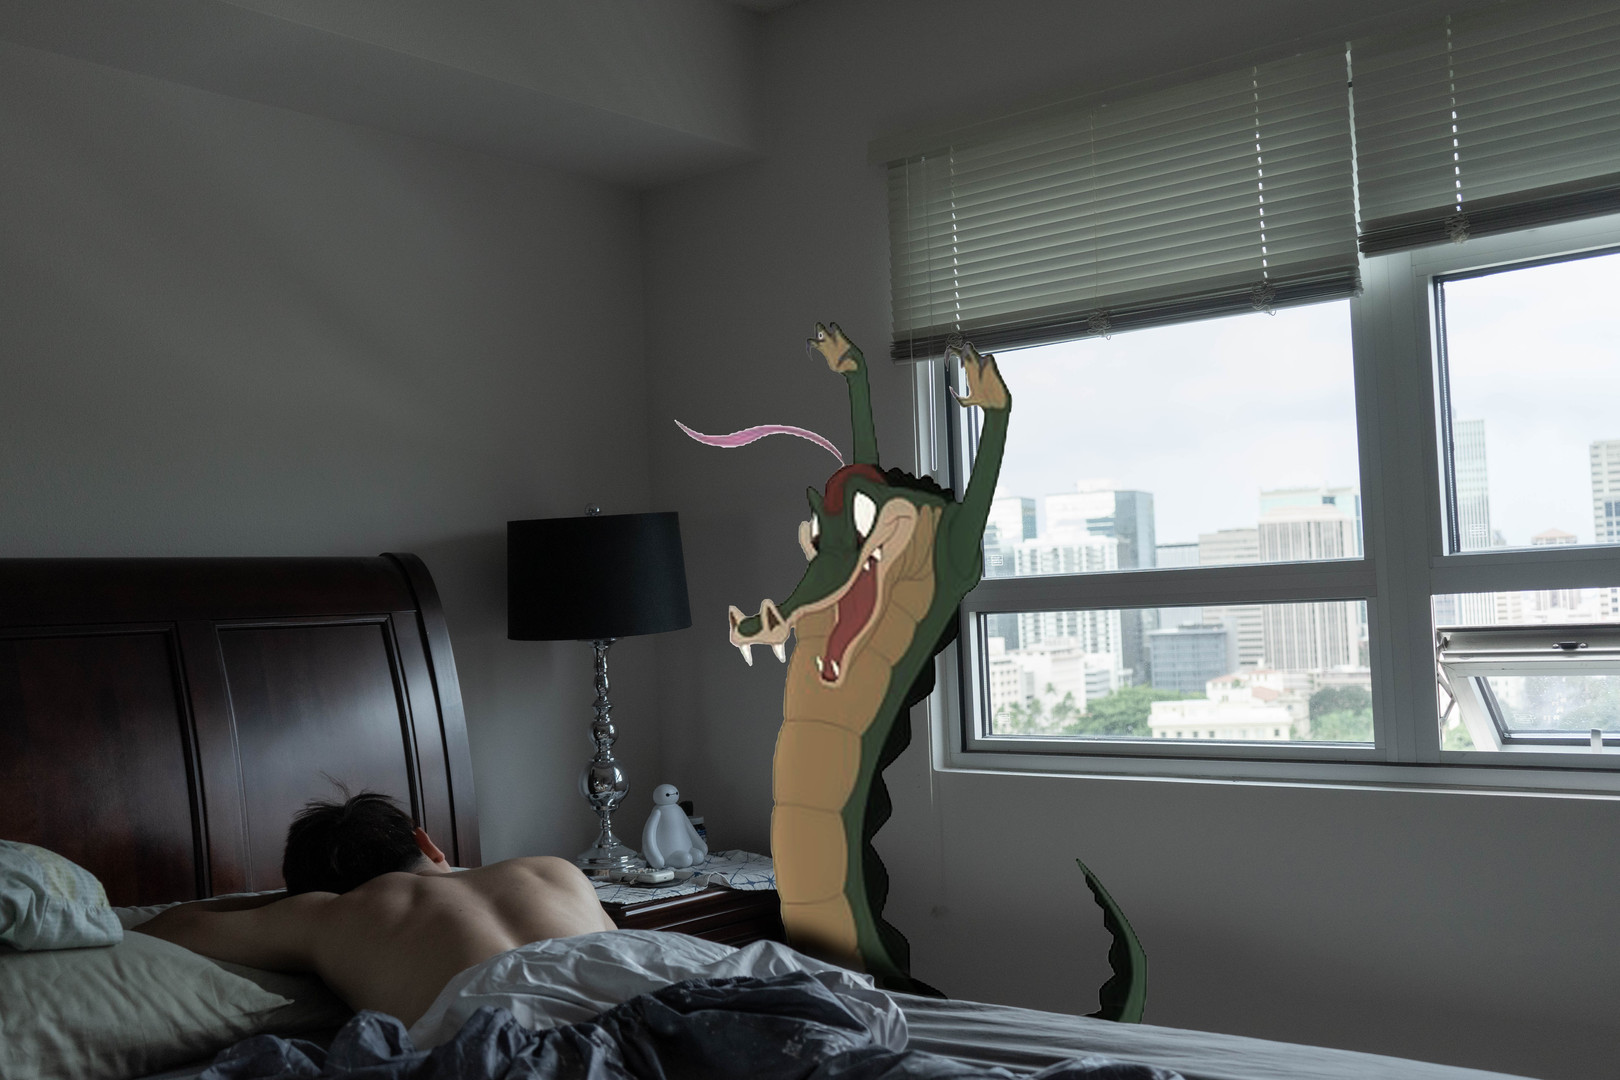 Fantasia Gator Morning.jpg